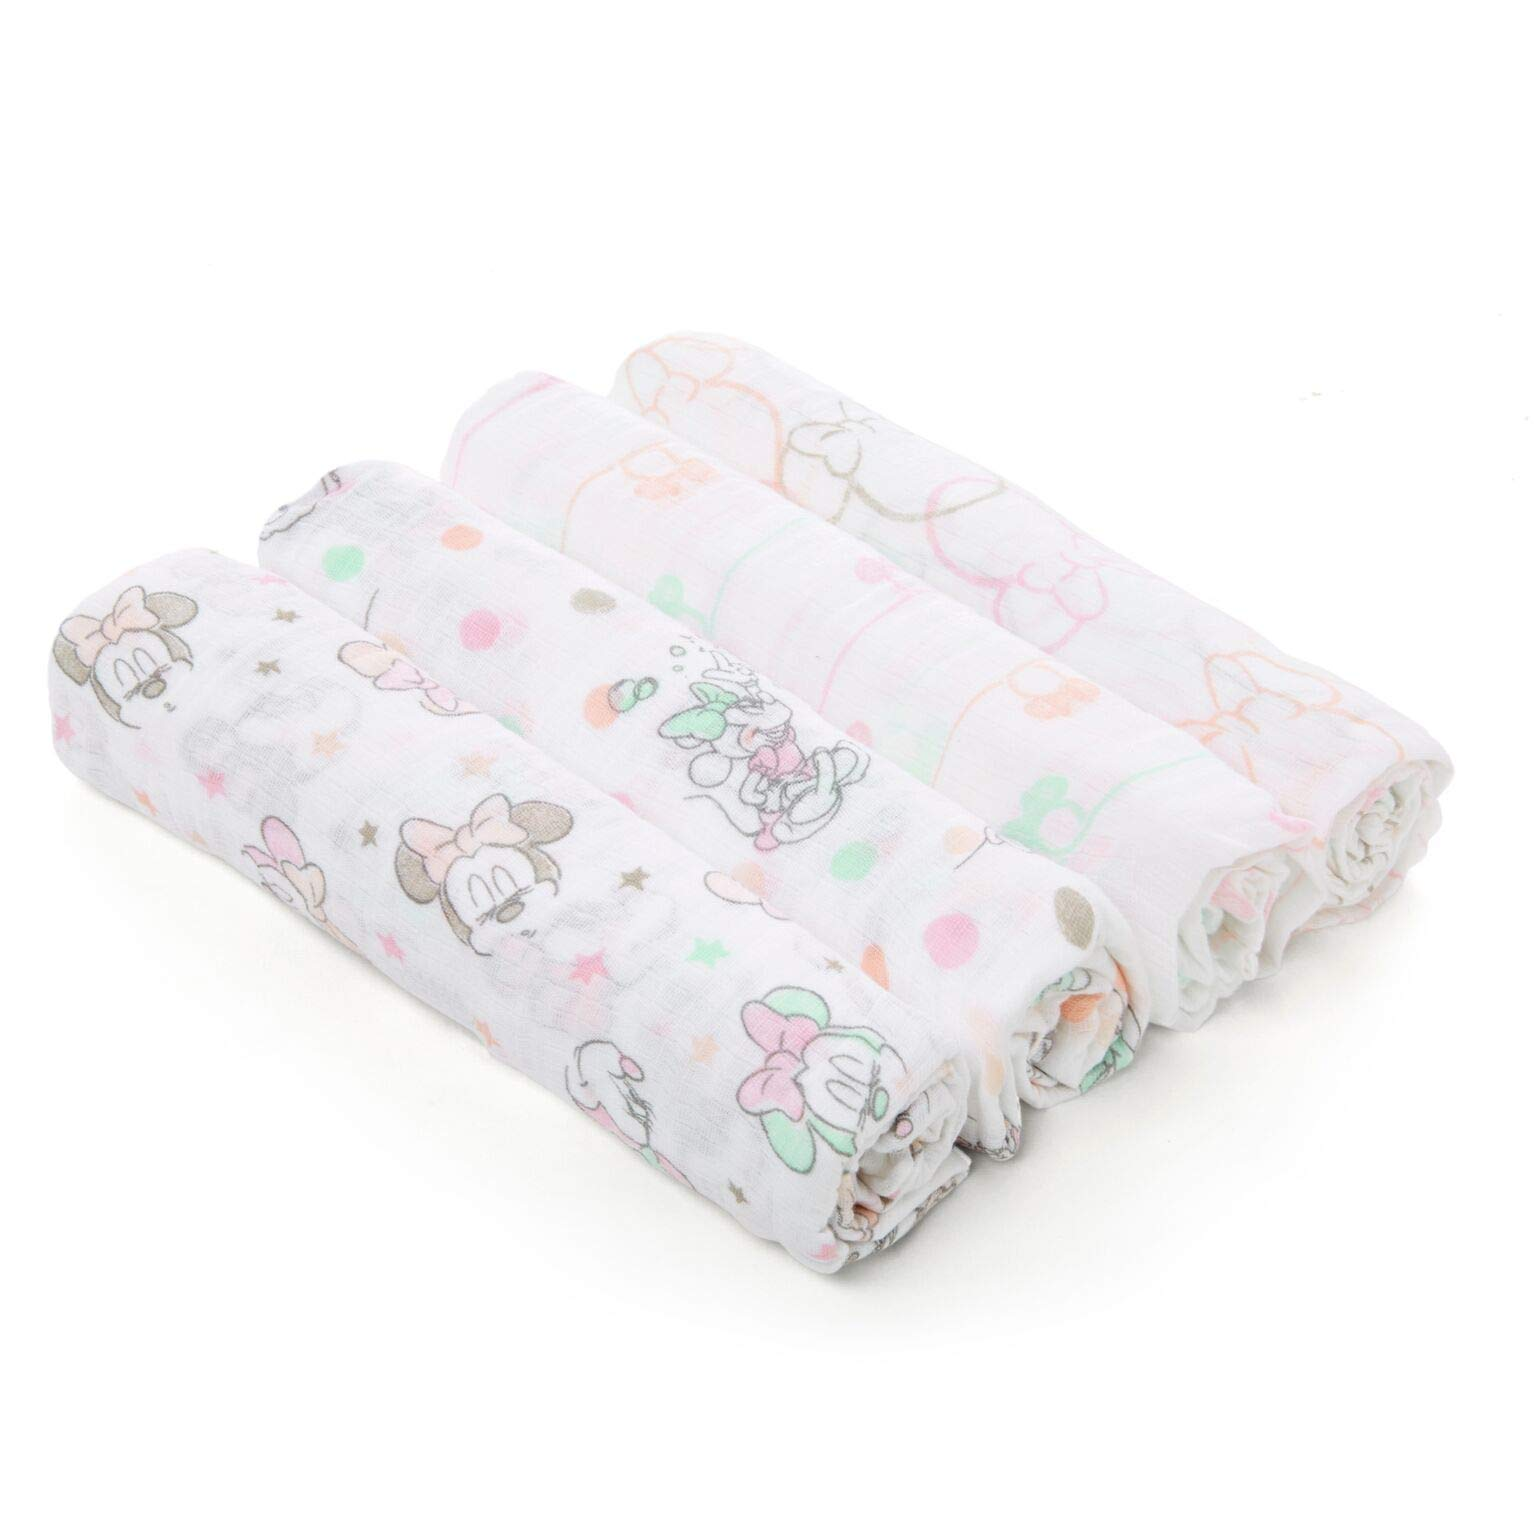 Aden by aden + anais Disney Swaddle Baby Blanket, 100% Cotton Muslin, 4 Pack, 44 X 44 inch, Minnie Bubble